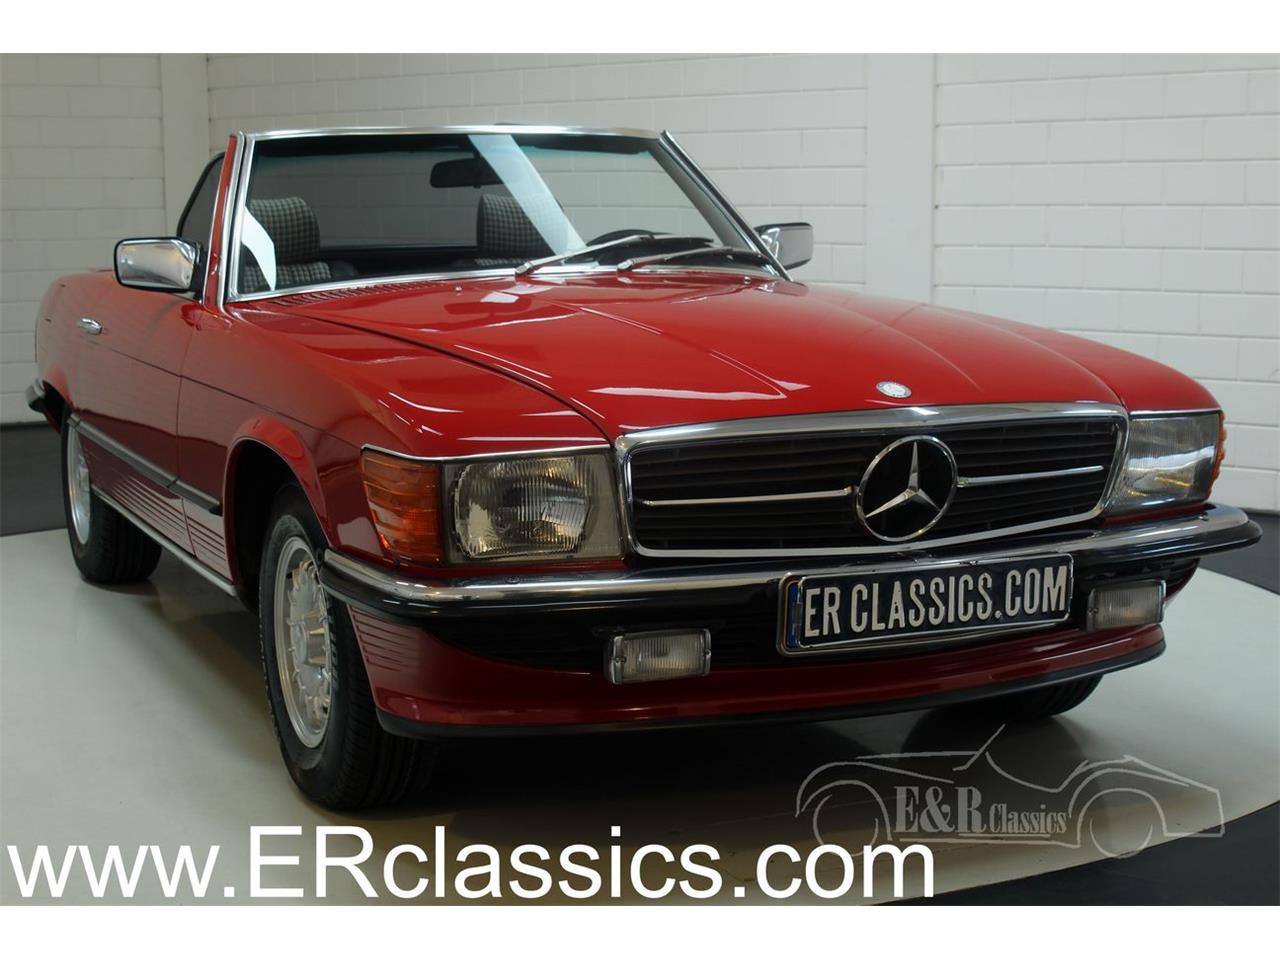 Large Picture of 1985 Mercedes-Benz 380SL located in Waalwijk Noord-Brabant - $38,550.00 Offered by E & R Classics - R1DJ